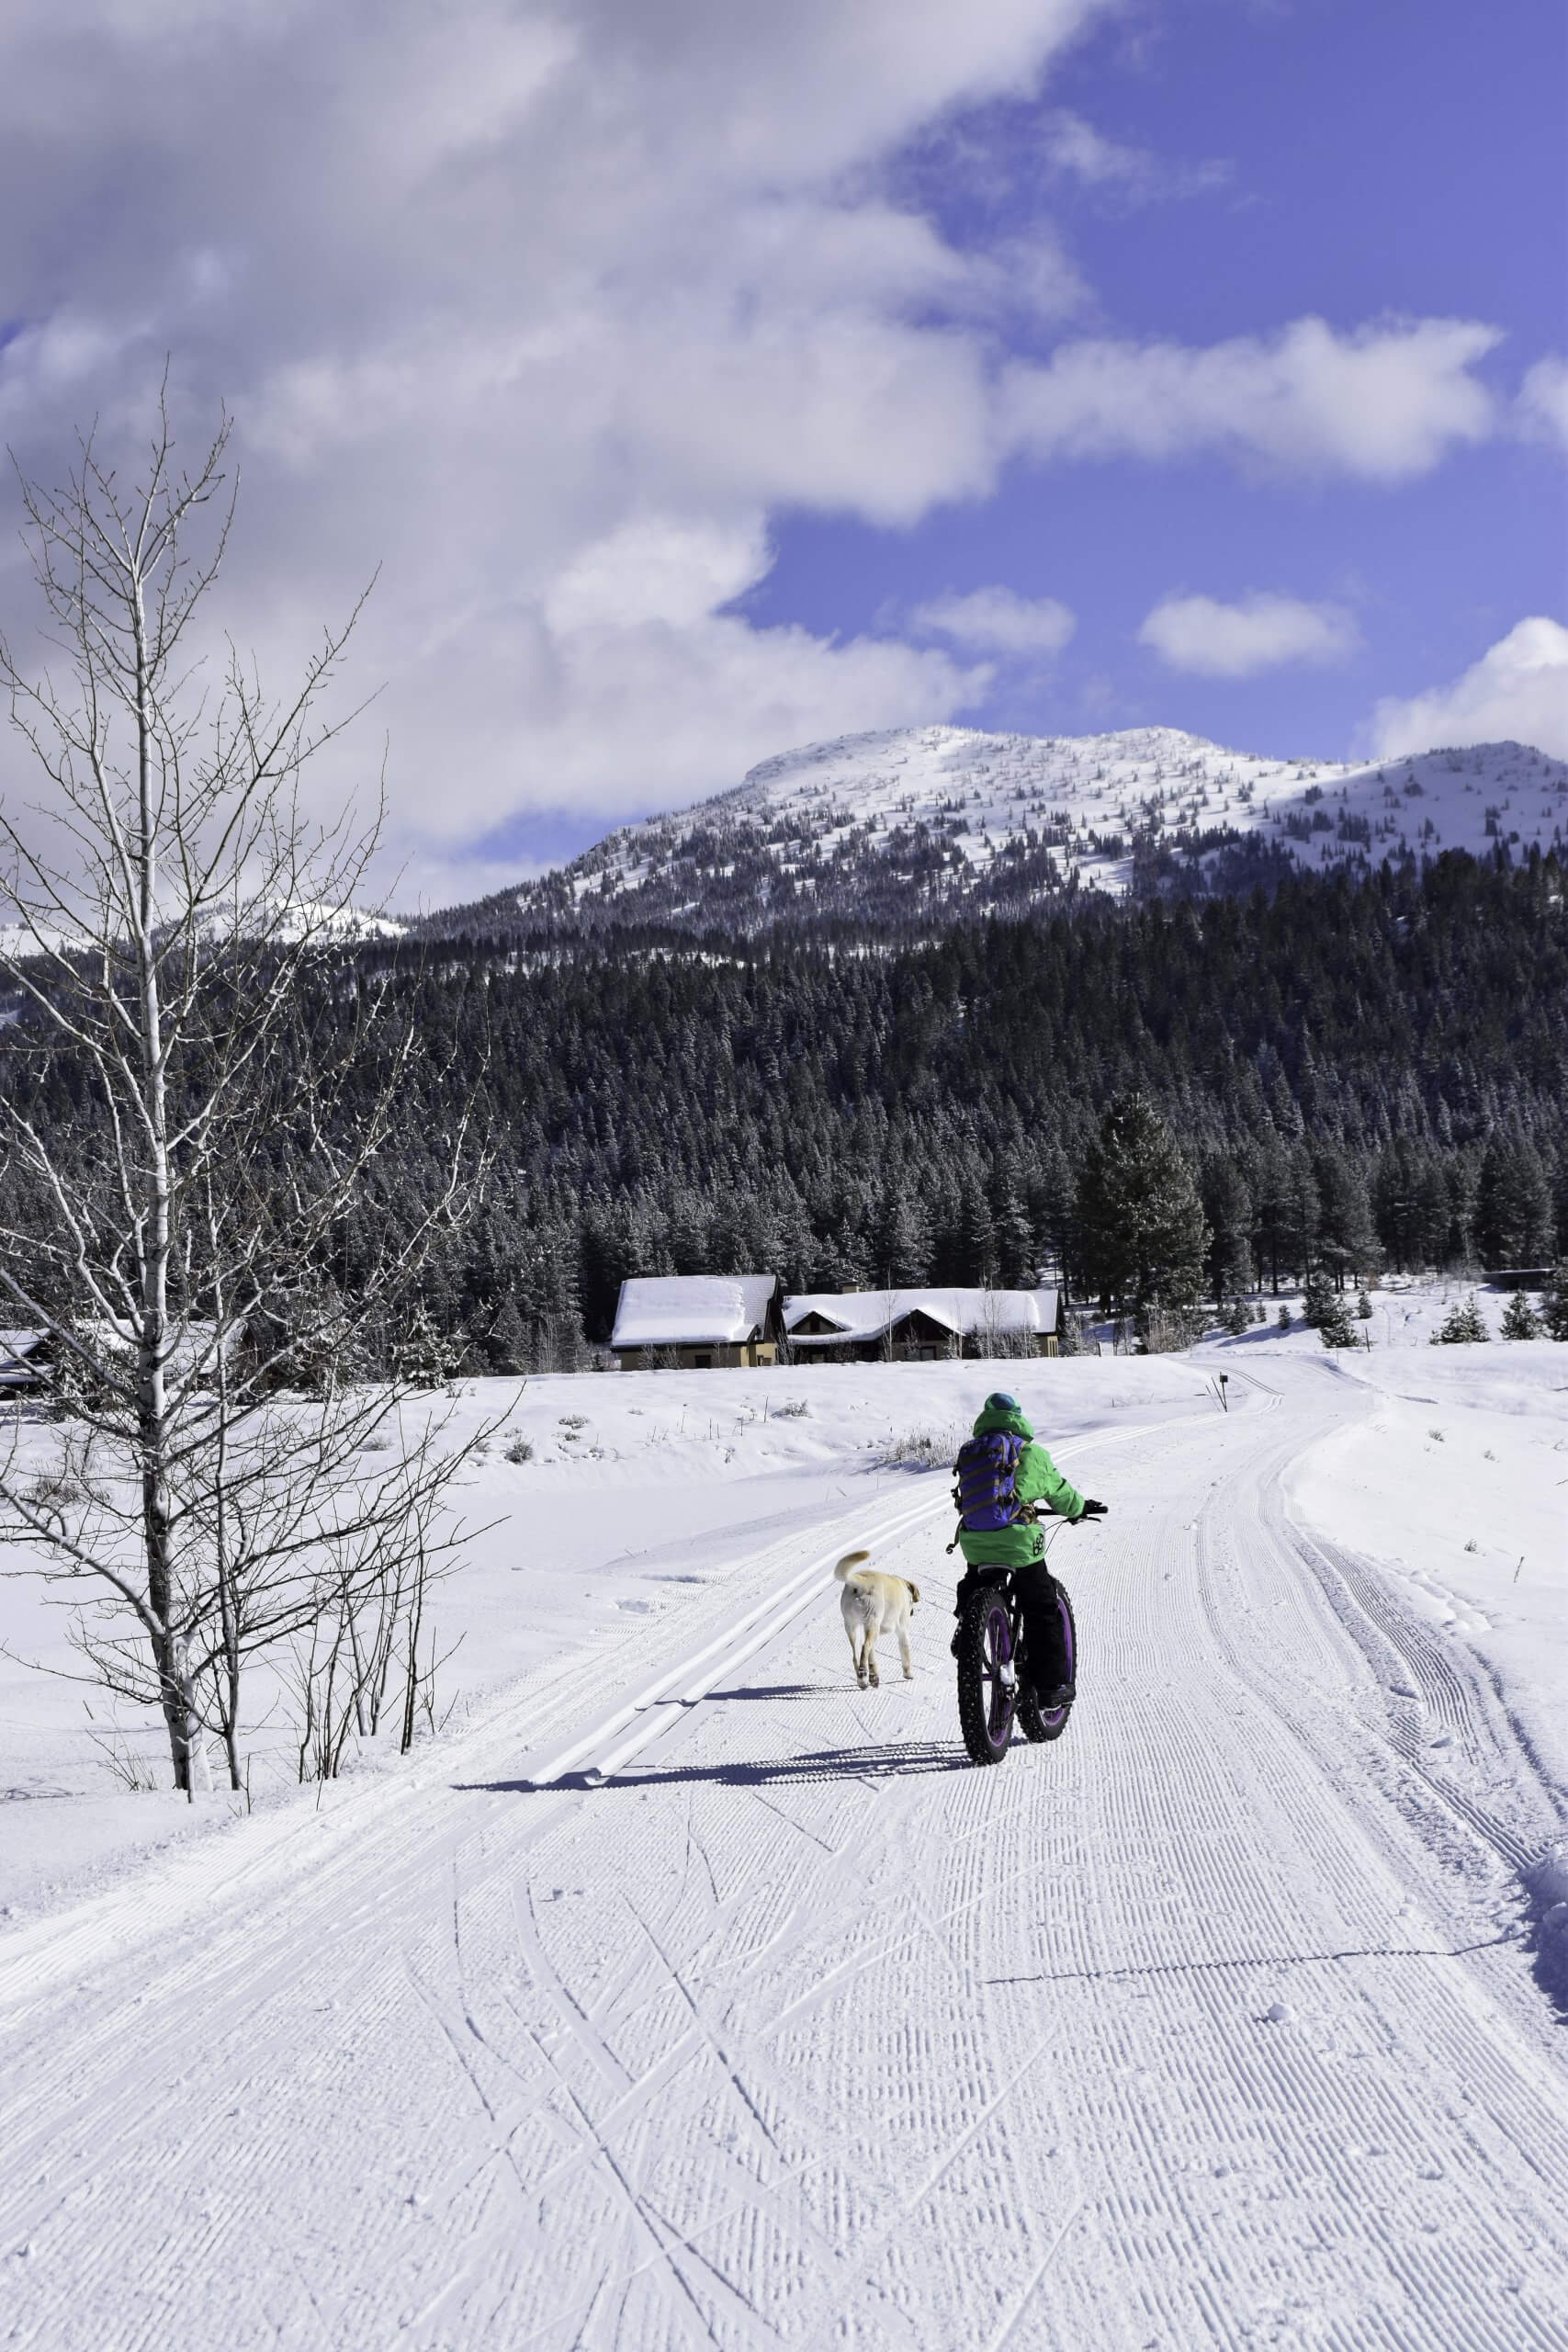 Jug Mountain Ranch offers plenty of easy, wide trails perfect for families. Photo Credit: Christina McEvoy.